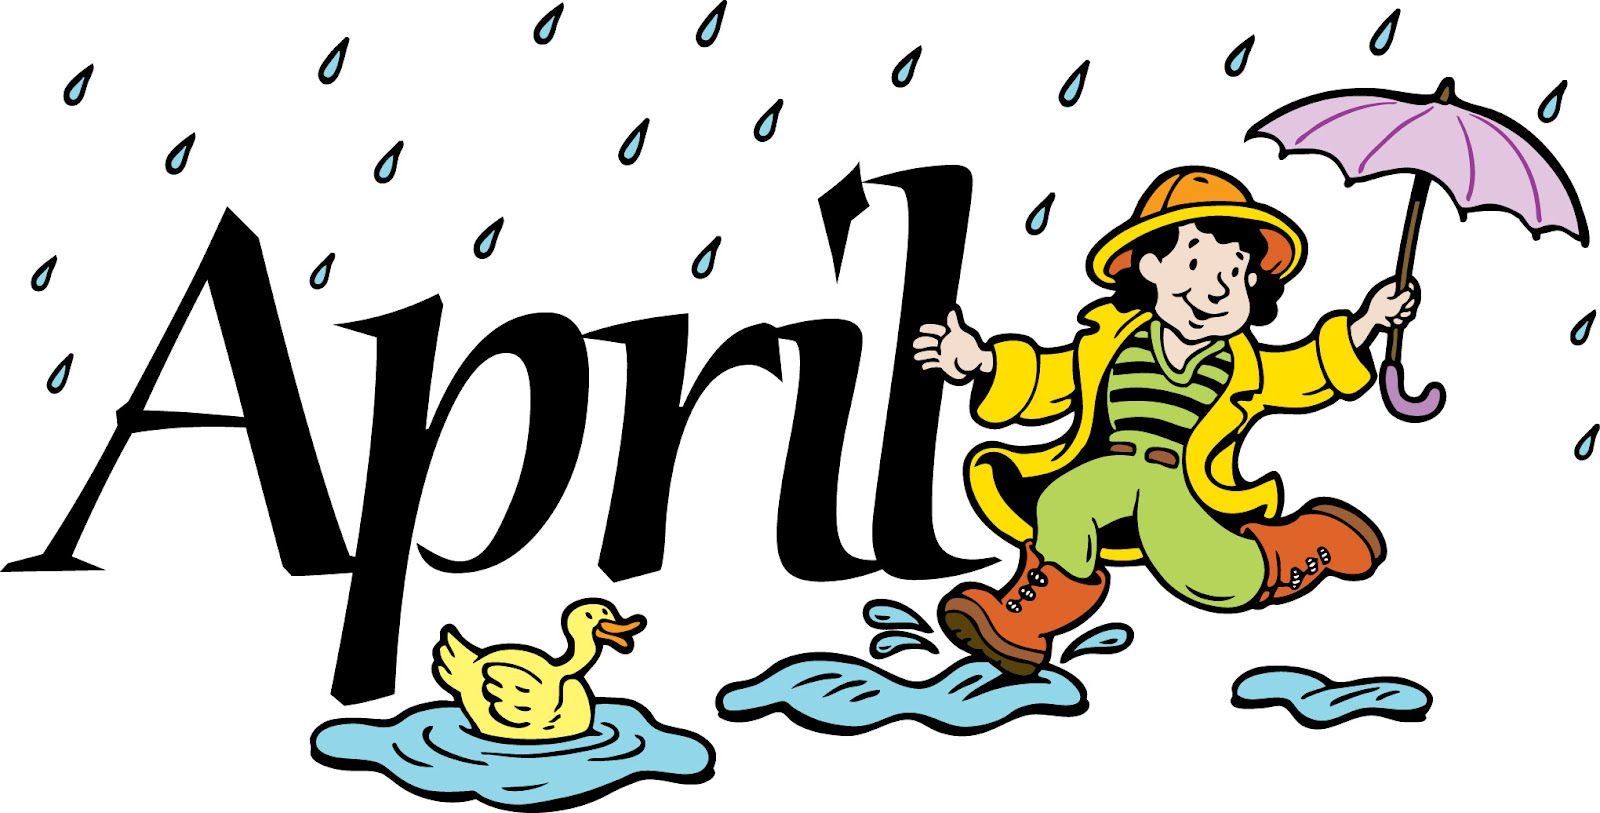 April Showers Book For Kids